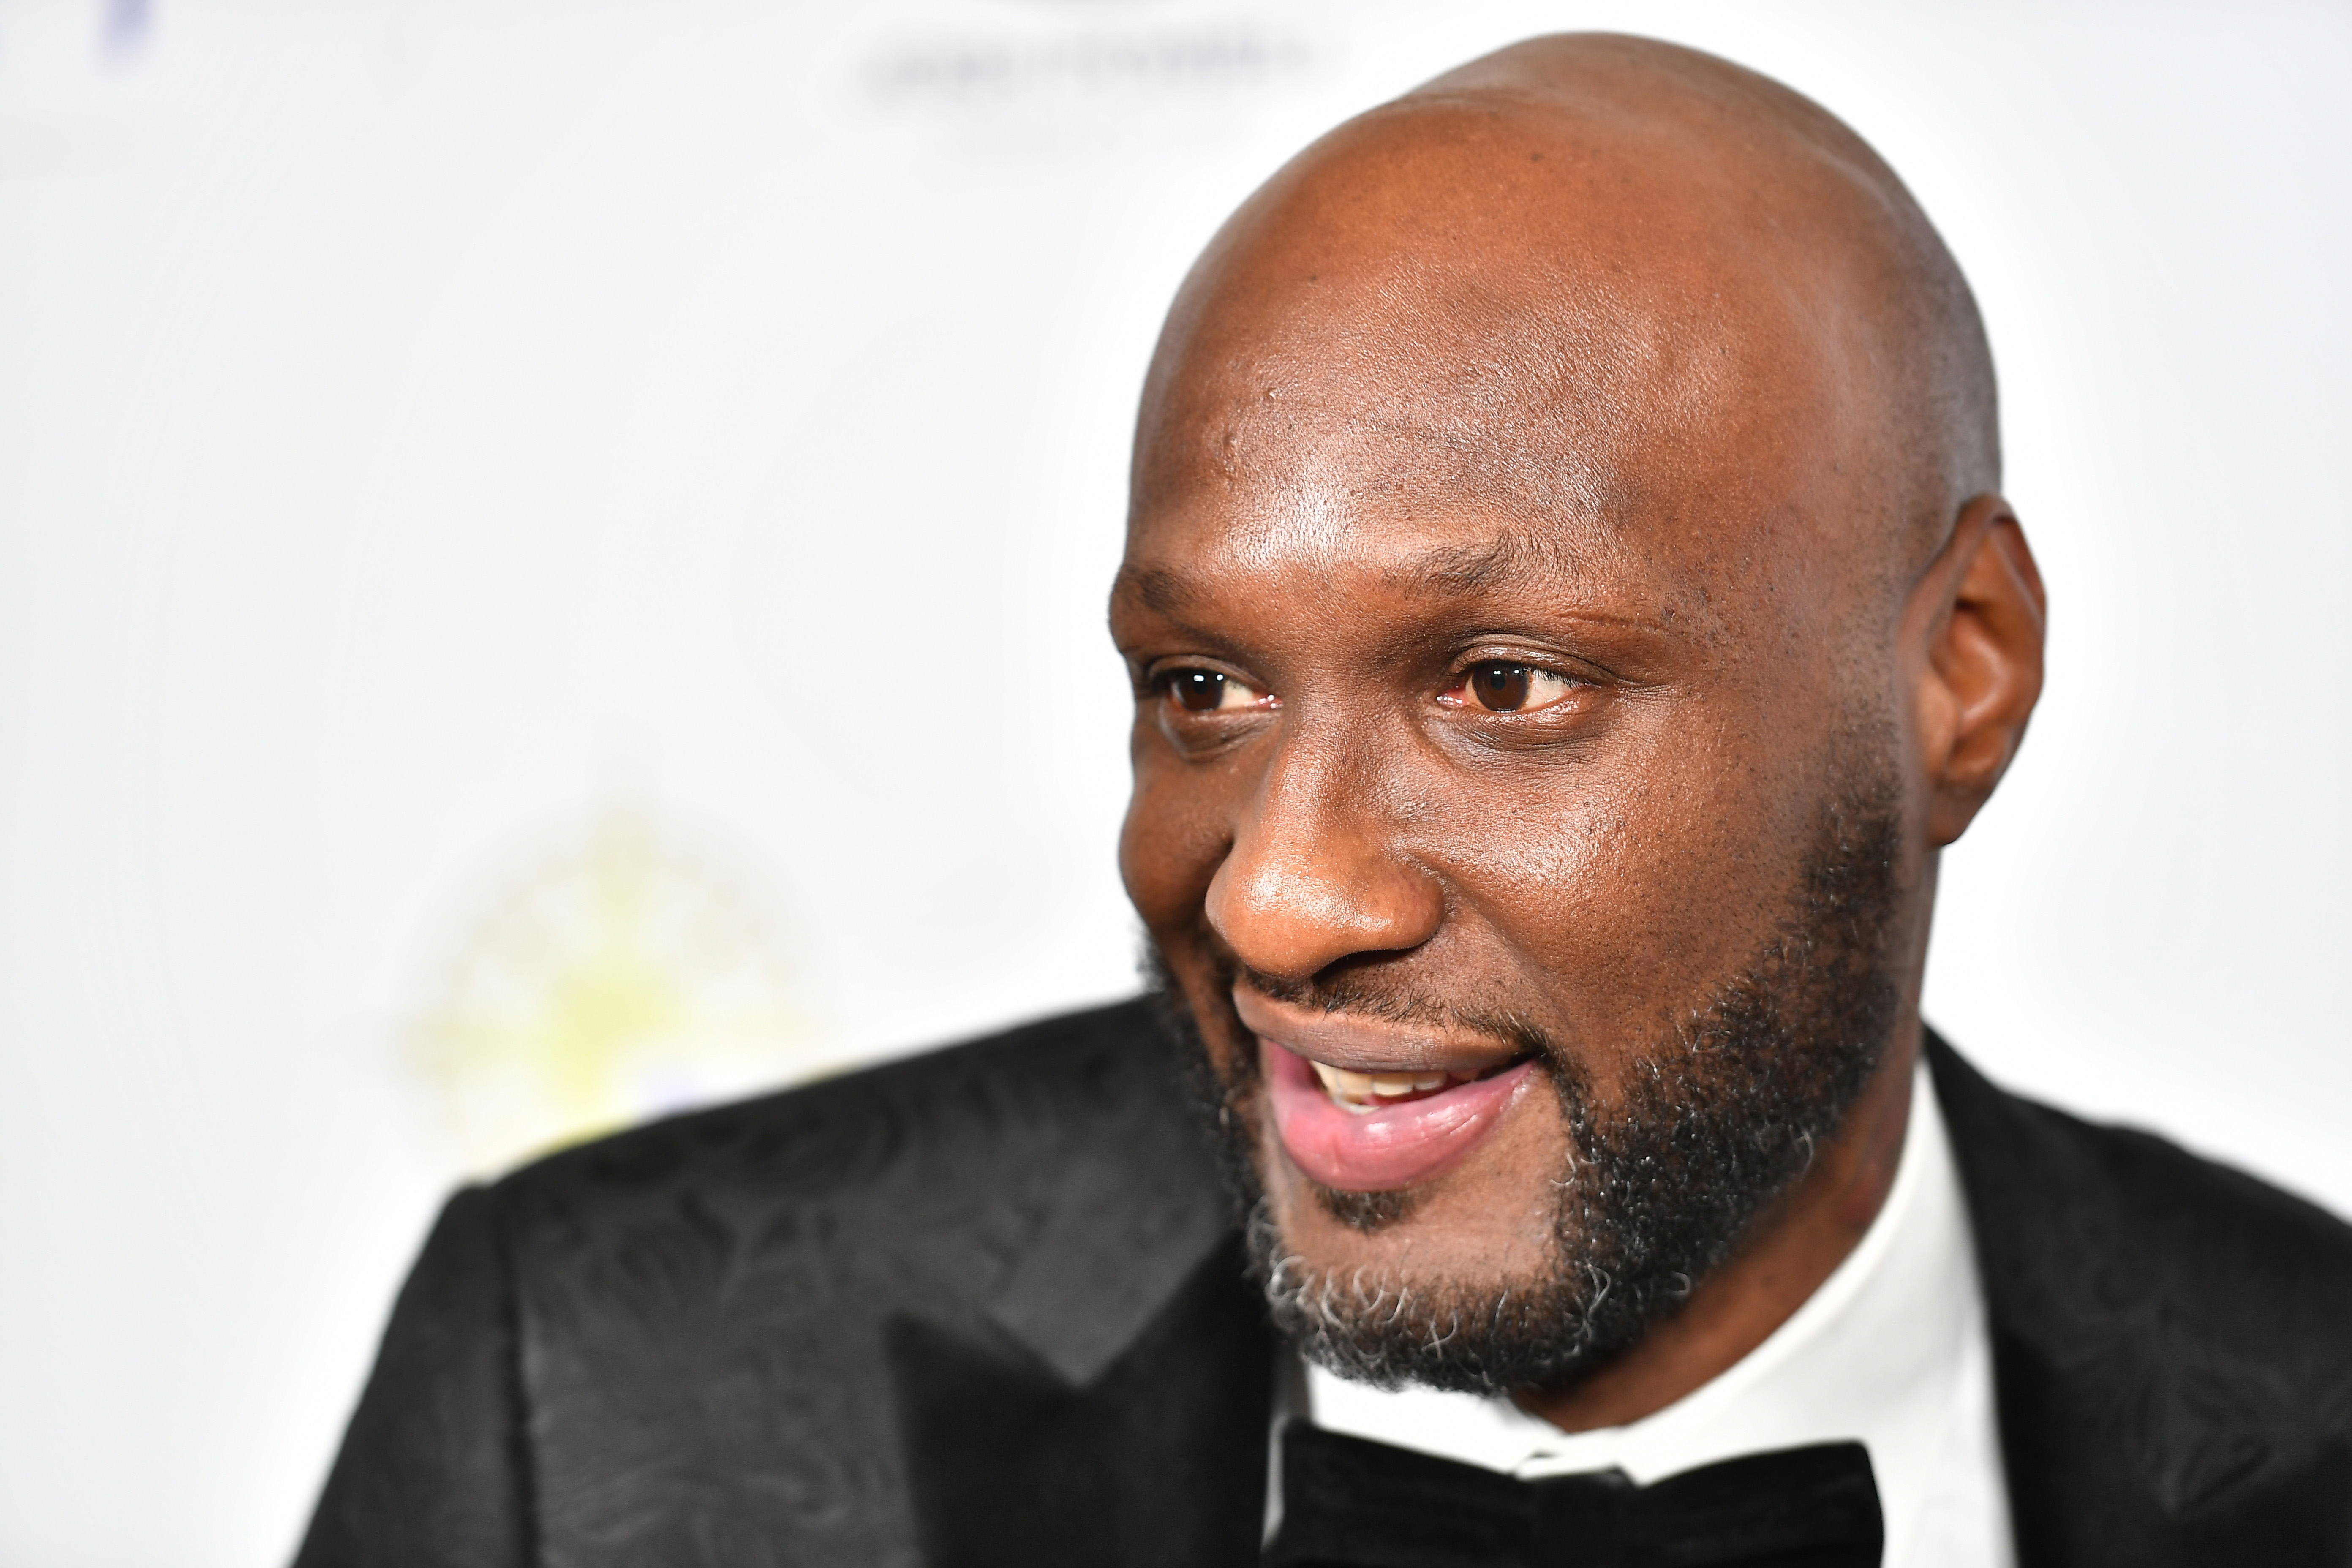 Lamar Odom Signs Celebrity Boxing Deal, Will Step In The Ring This June